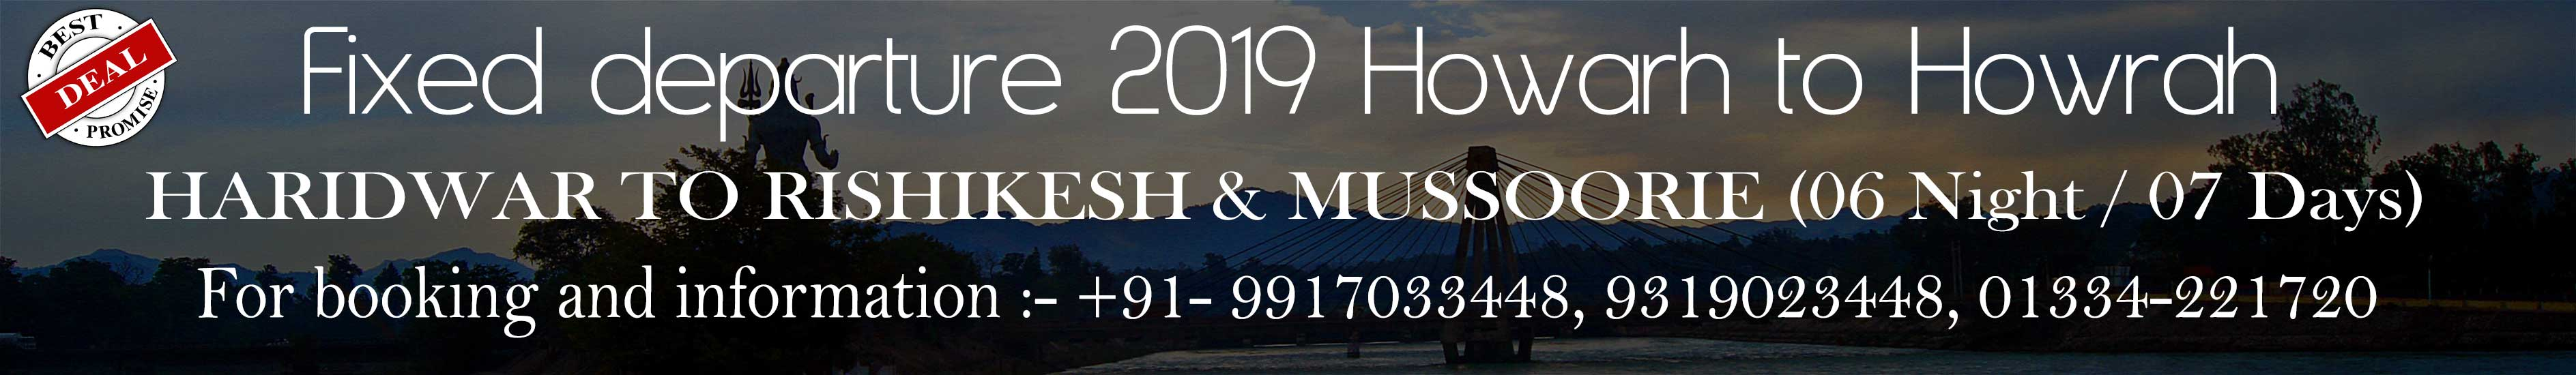 HARIDWAR RISHIKESH MUSSOORIE TOUR PACKAGE ( 7 NIGHT / 8 DAYS)  Home fixed departure 2019